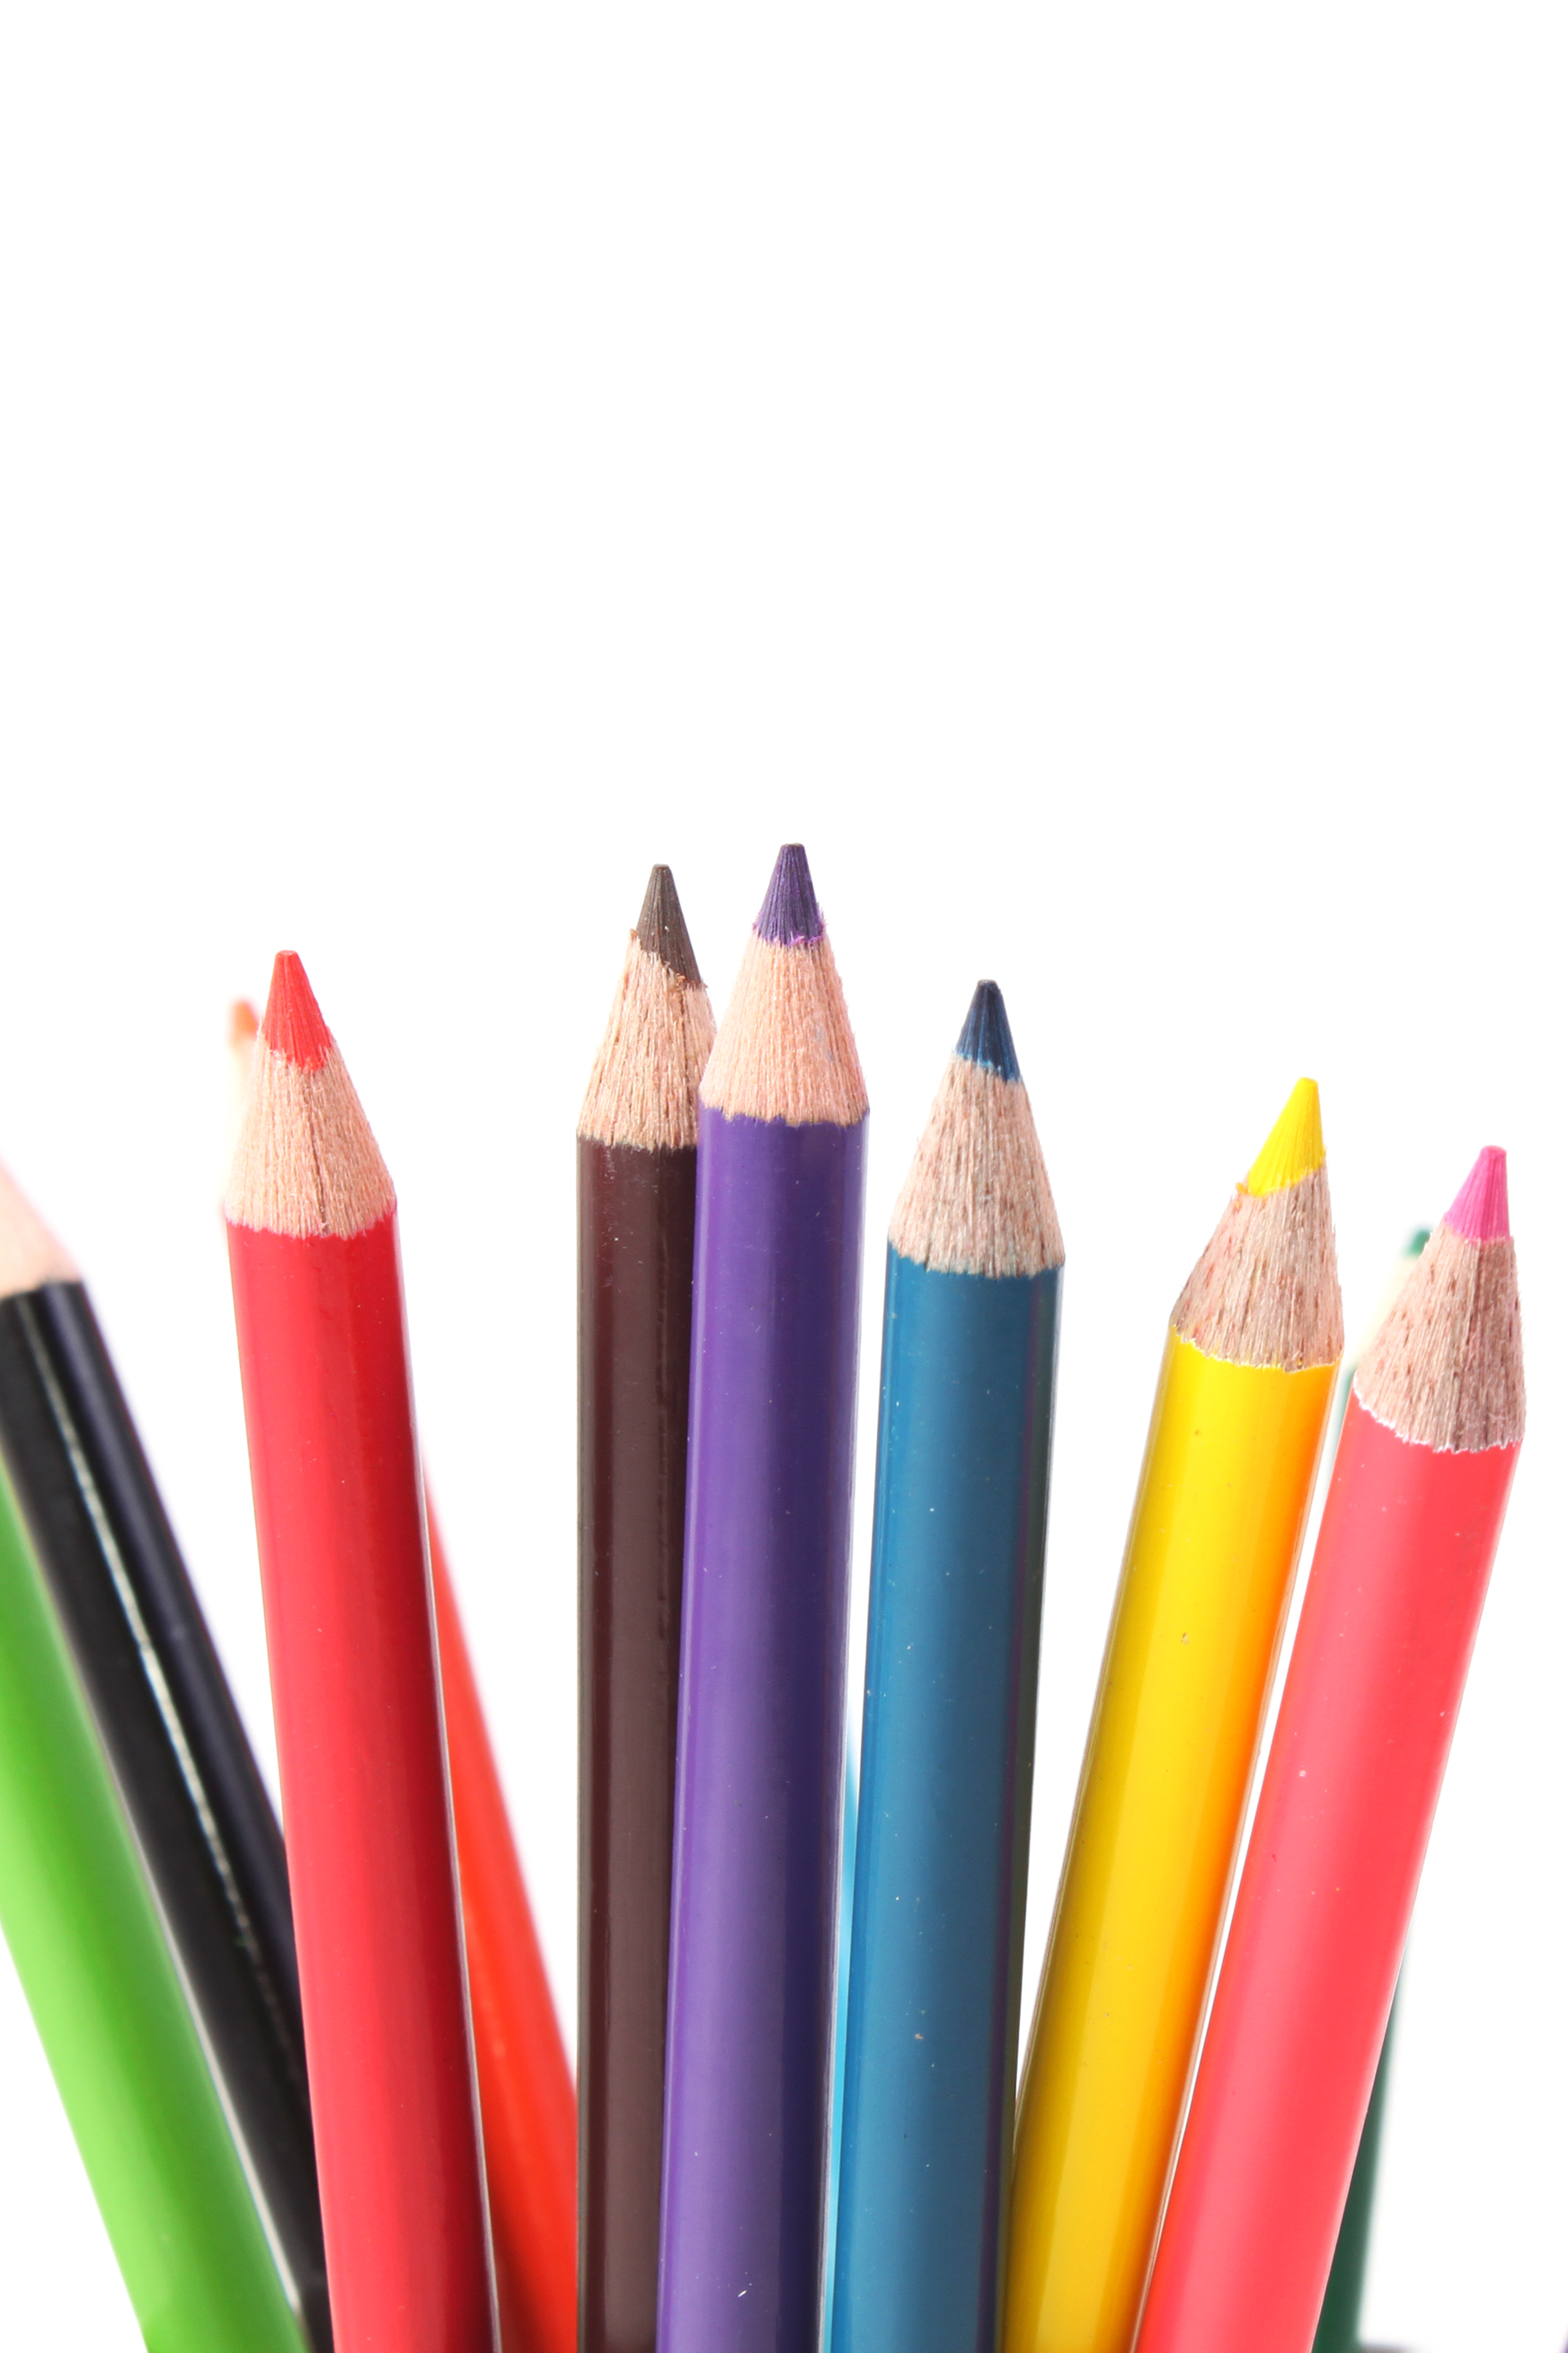 Multicolor Crayons, Multicolour, Educate, Education, Equipment, HQ Photo